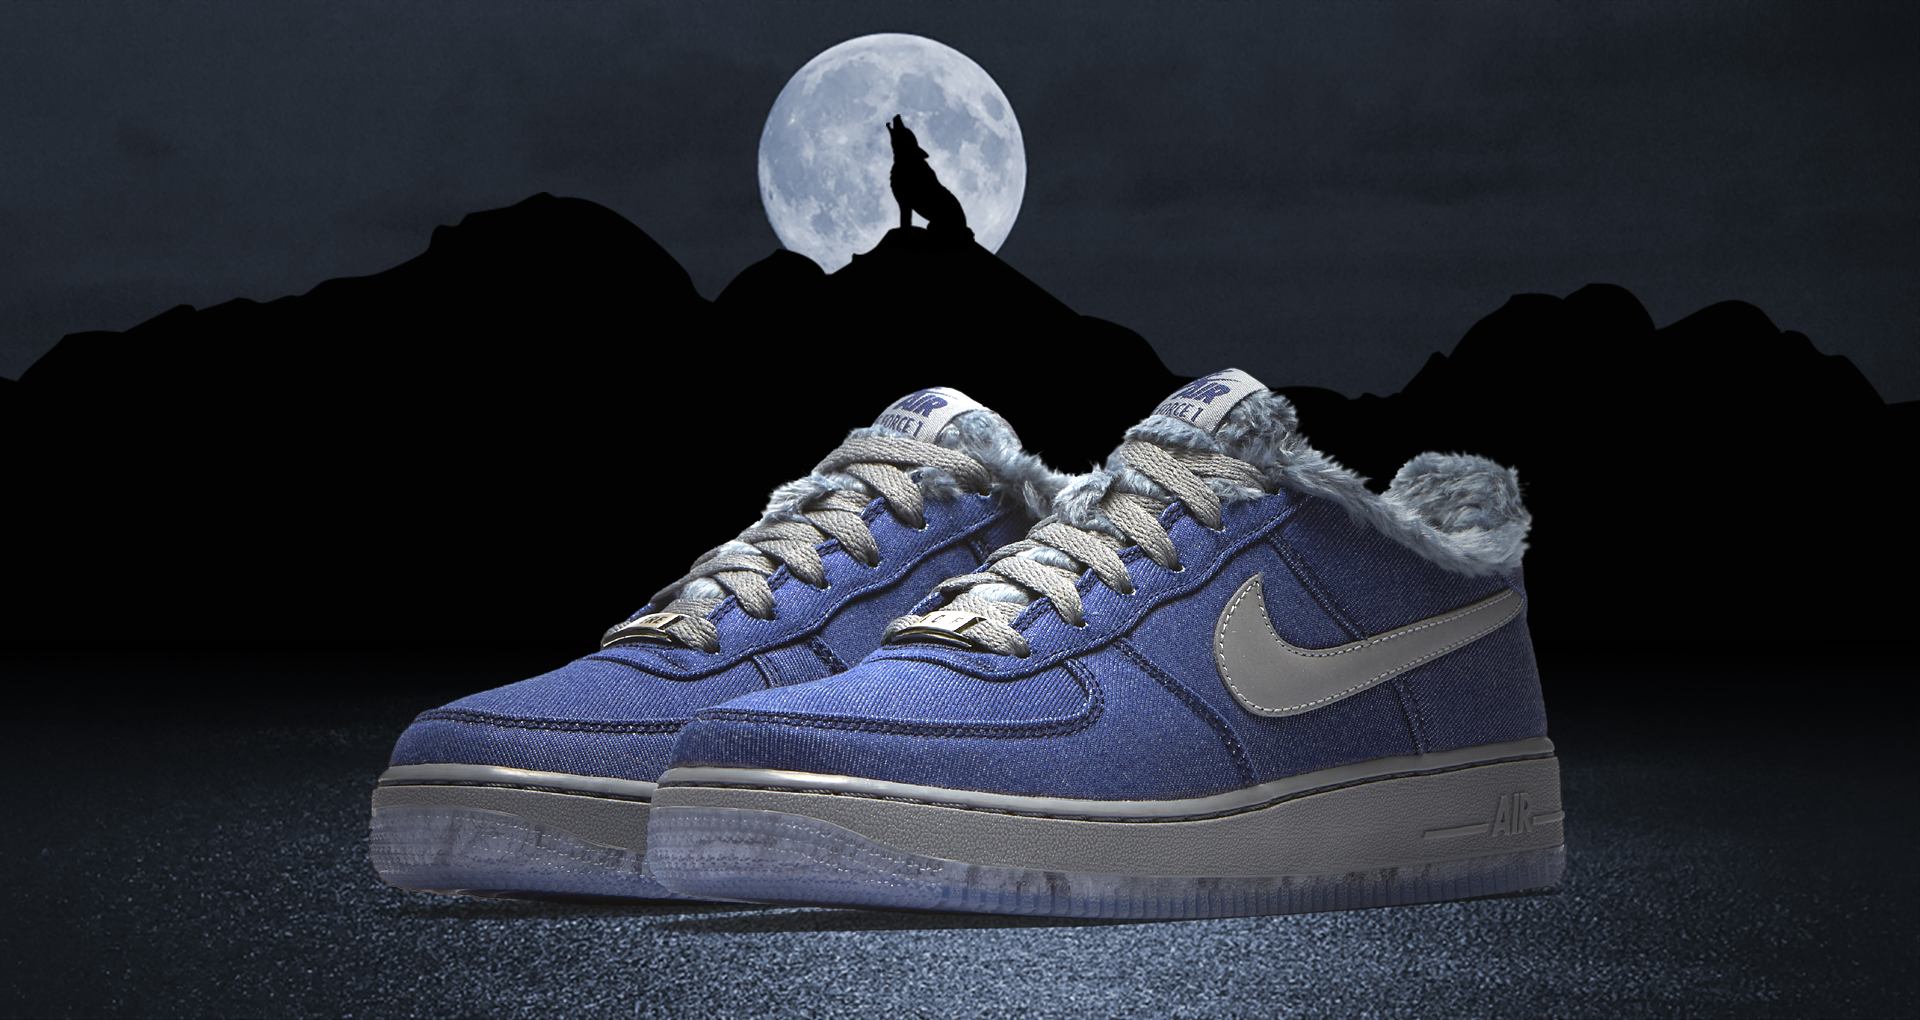 Nike Unleashes the Air Force 1 GS 'Full Moon' for Friday the